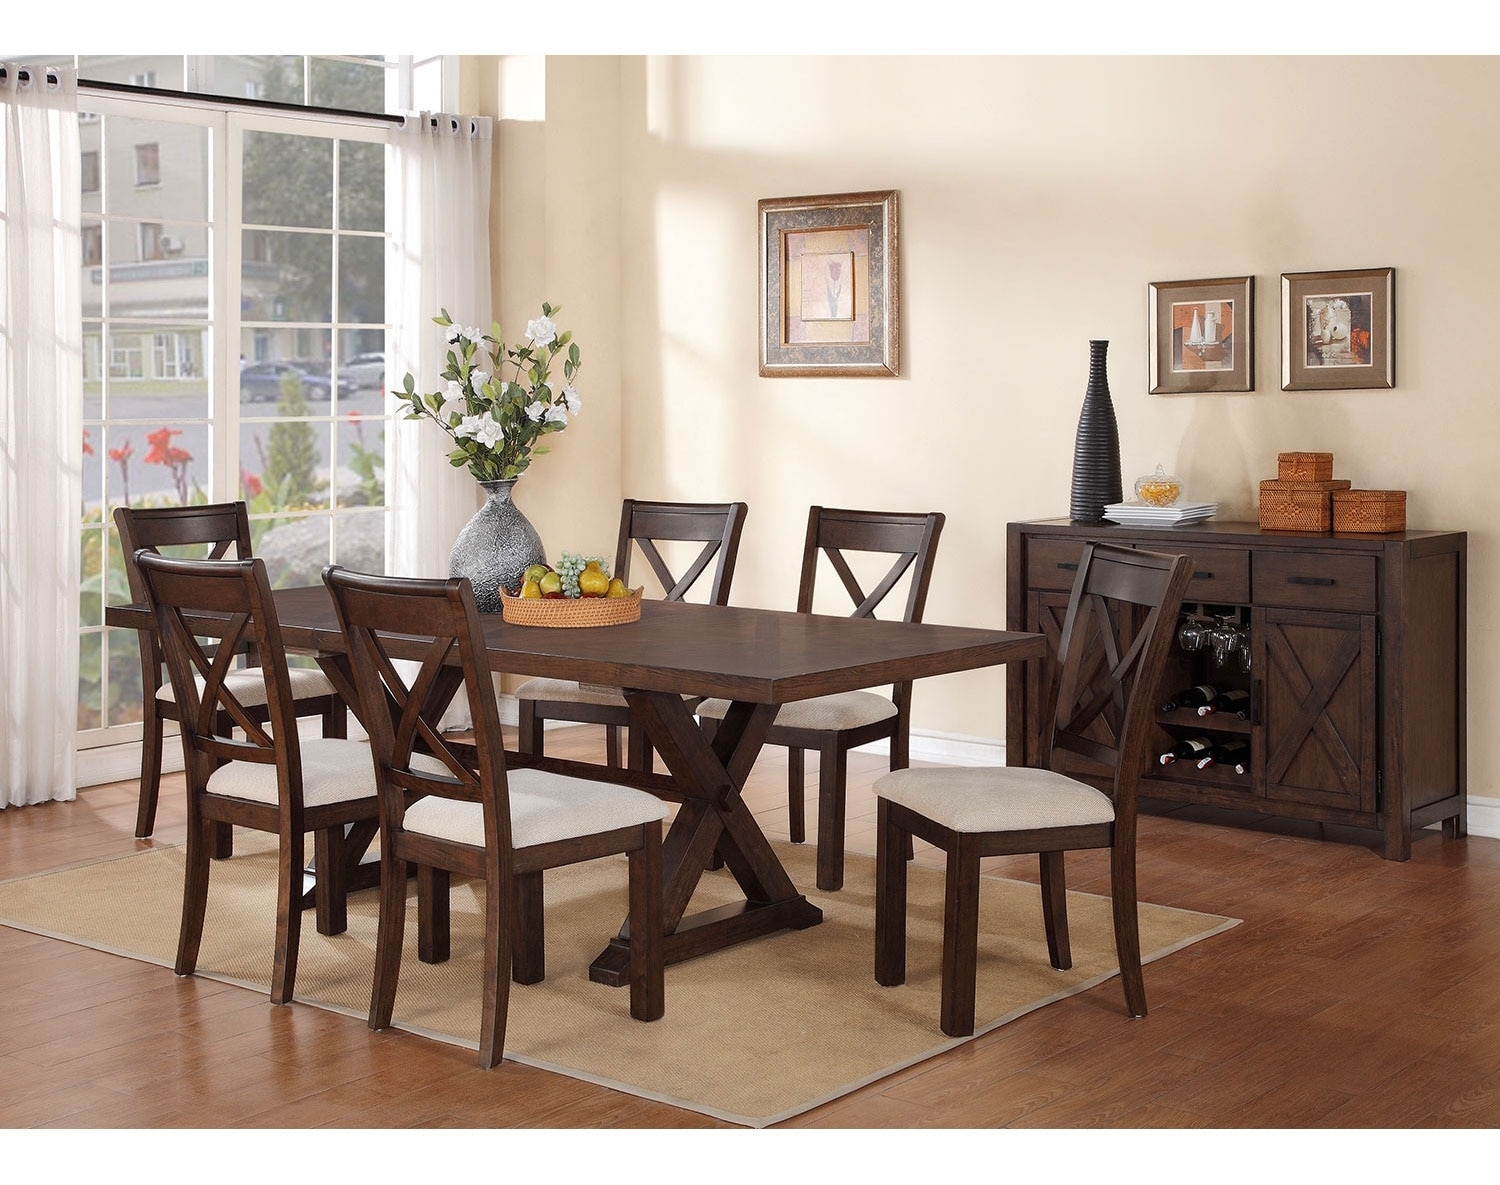 Dining Set By Collections ~ Dining room collections sets canada leon s